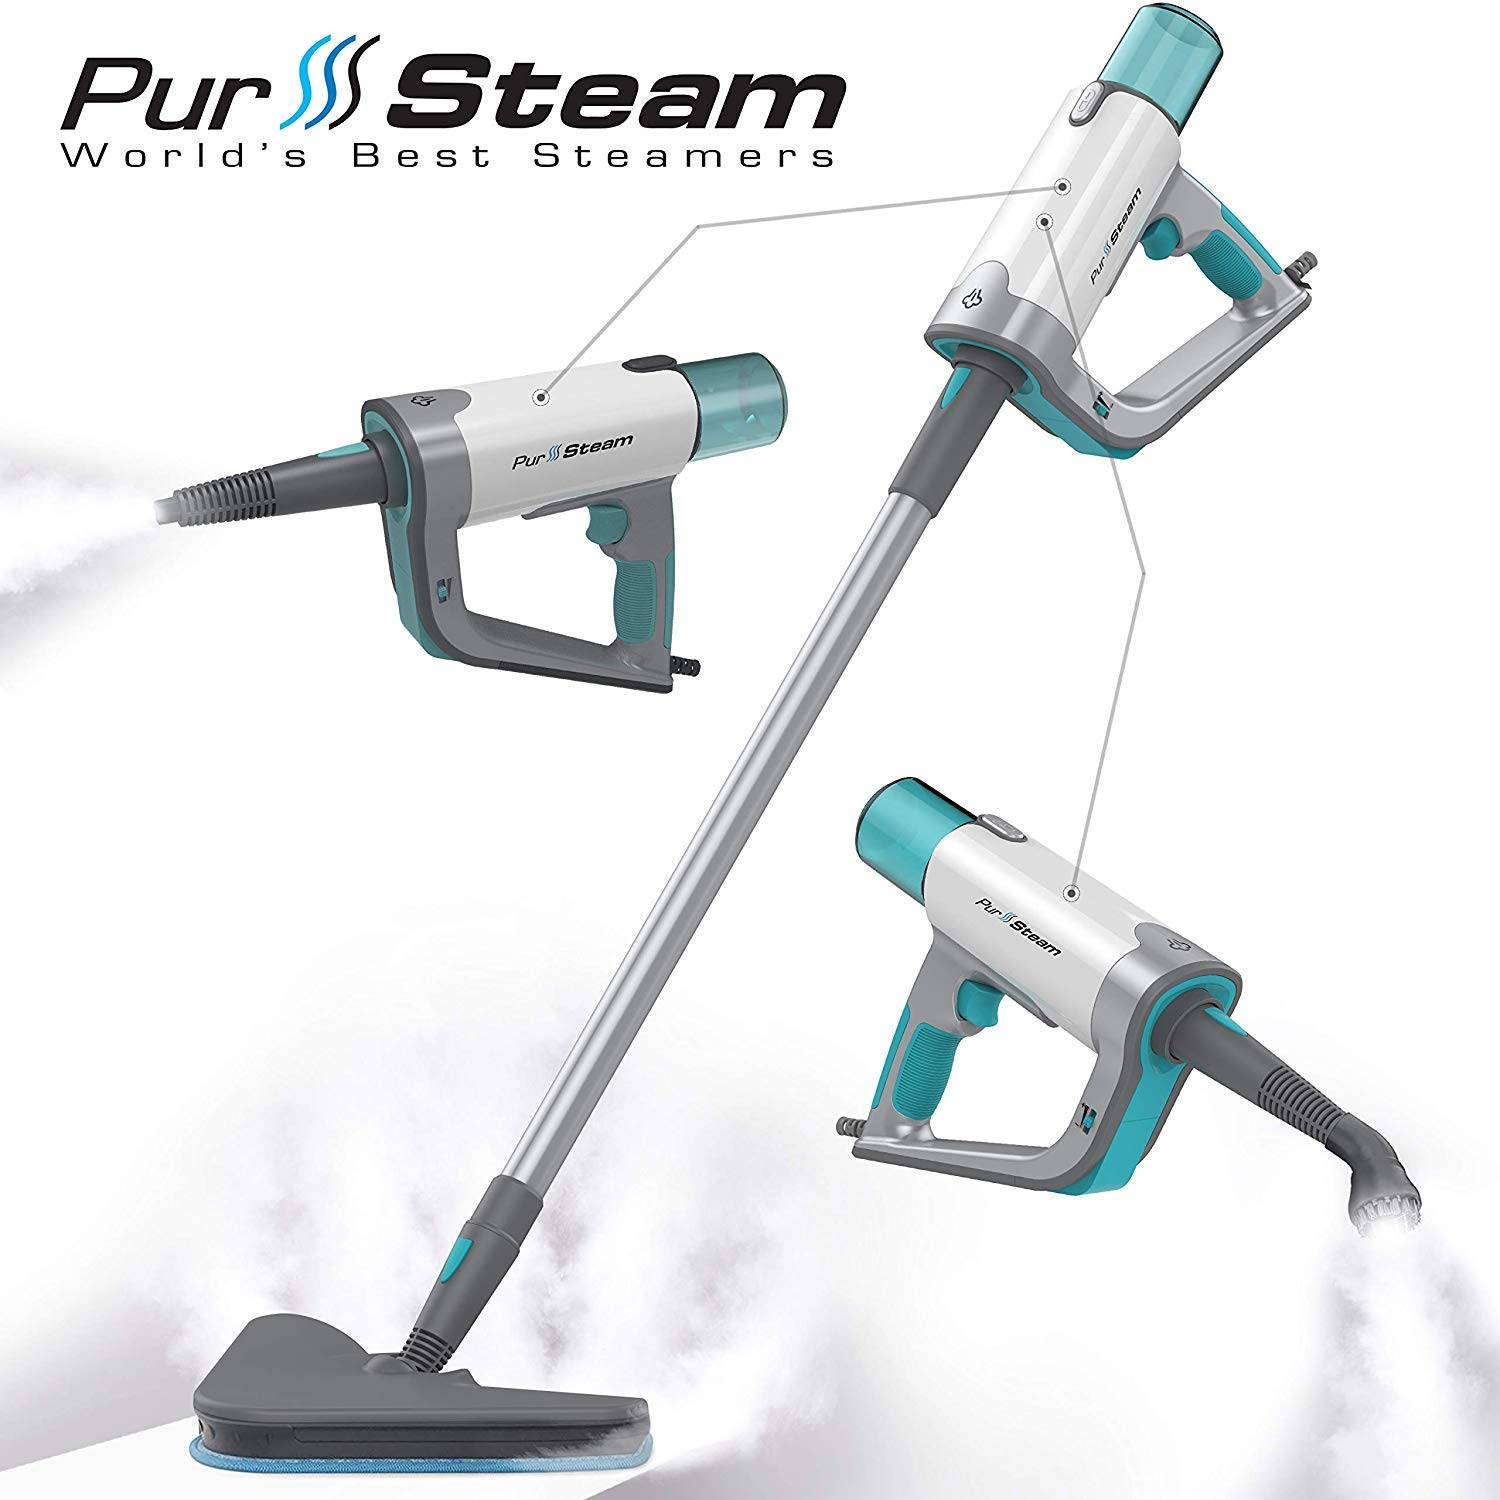 Steam Mop Cleaner ThermaPro Elite 12 in 1 for Hardwood/Tiles/Vinyl/Carpet - Easy-Detachable Handheld Steam Cleaner for Kitchen - Garment - Furniture and Clothes, Multifunctional Whole House Steamer by PurSteam World's Best Steamers